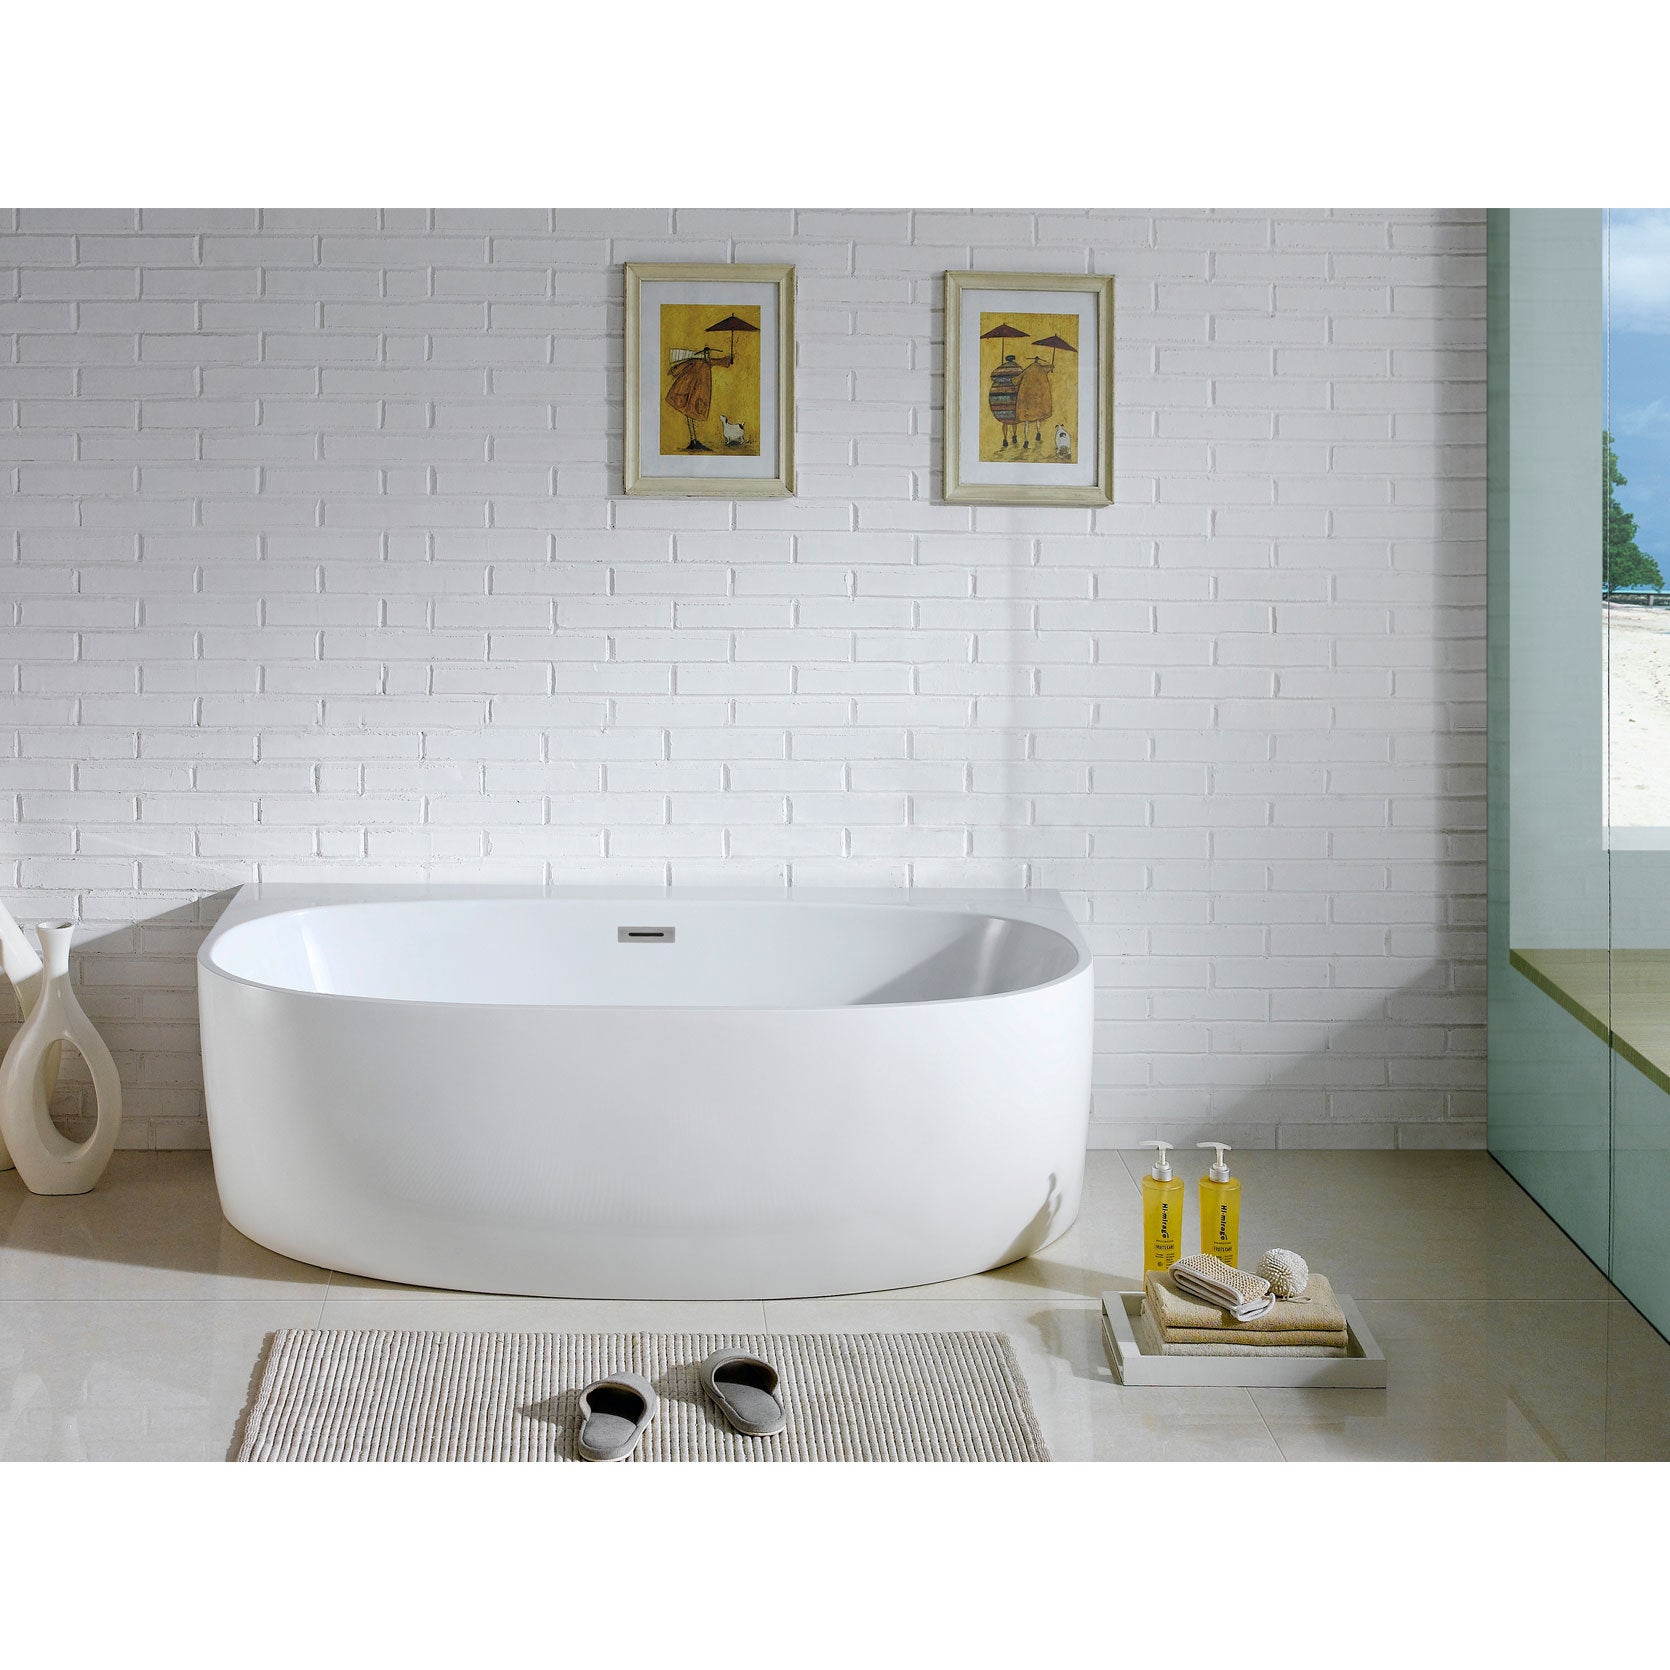 inch kitchen of tubs bath design reviews image toto independent tub long bathtubs